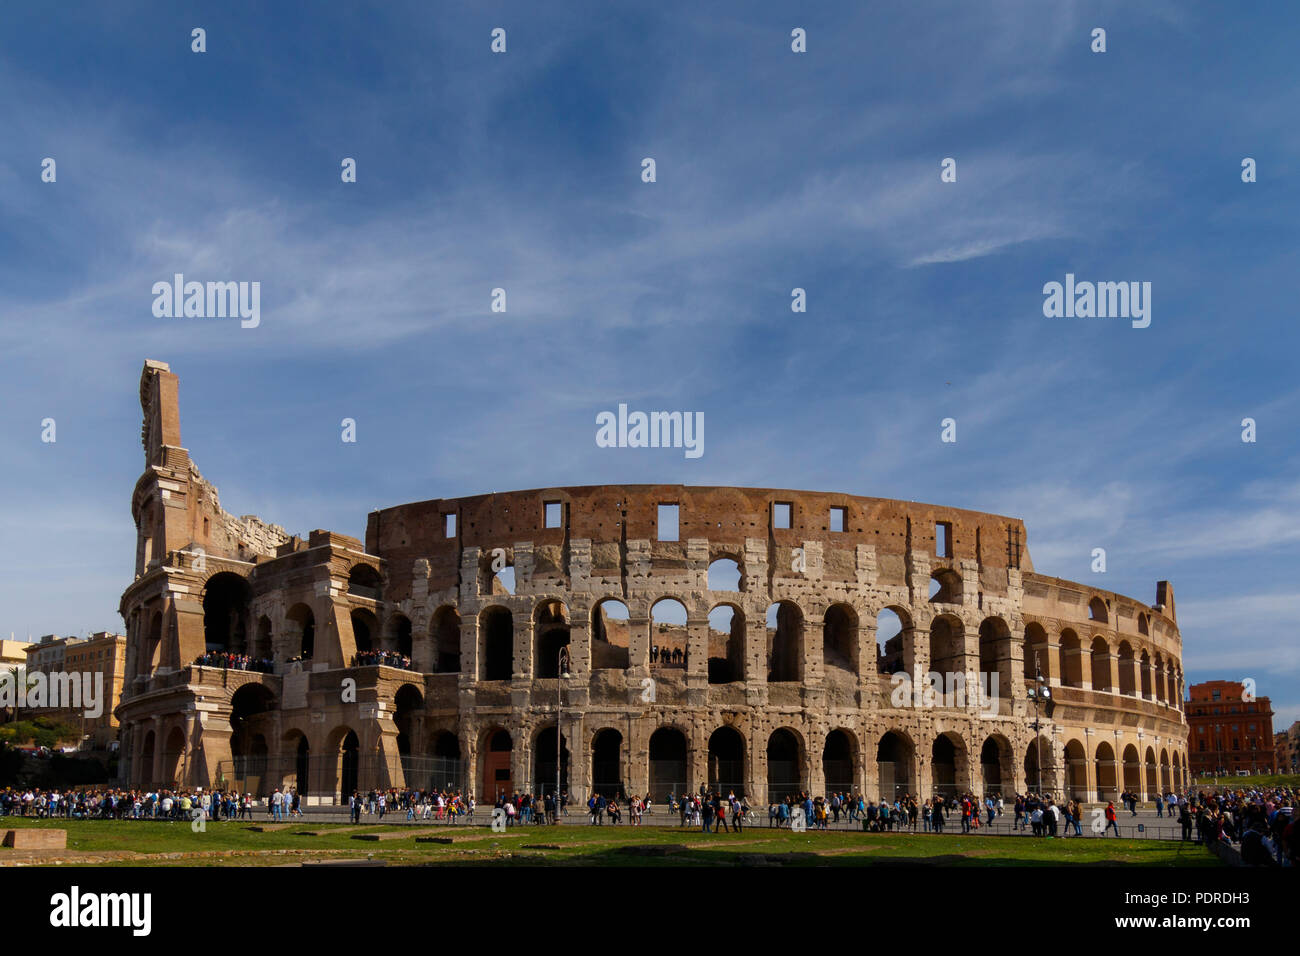 Colosseum of Rome at daylight, UNESCO World Heritage Site Rome, Rome, Italy - Stock Image